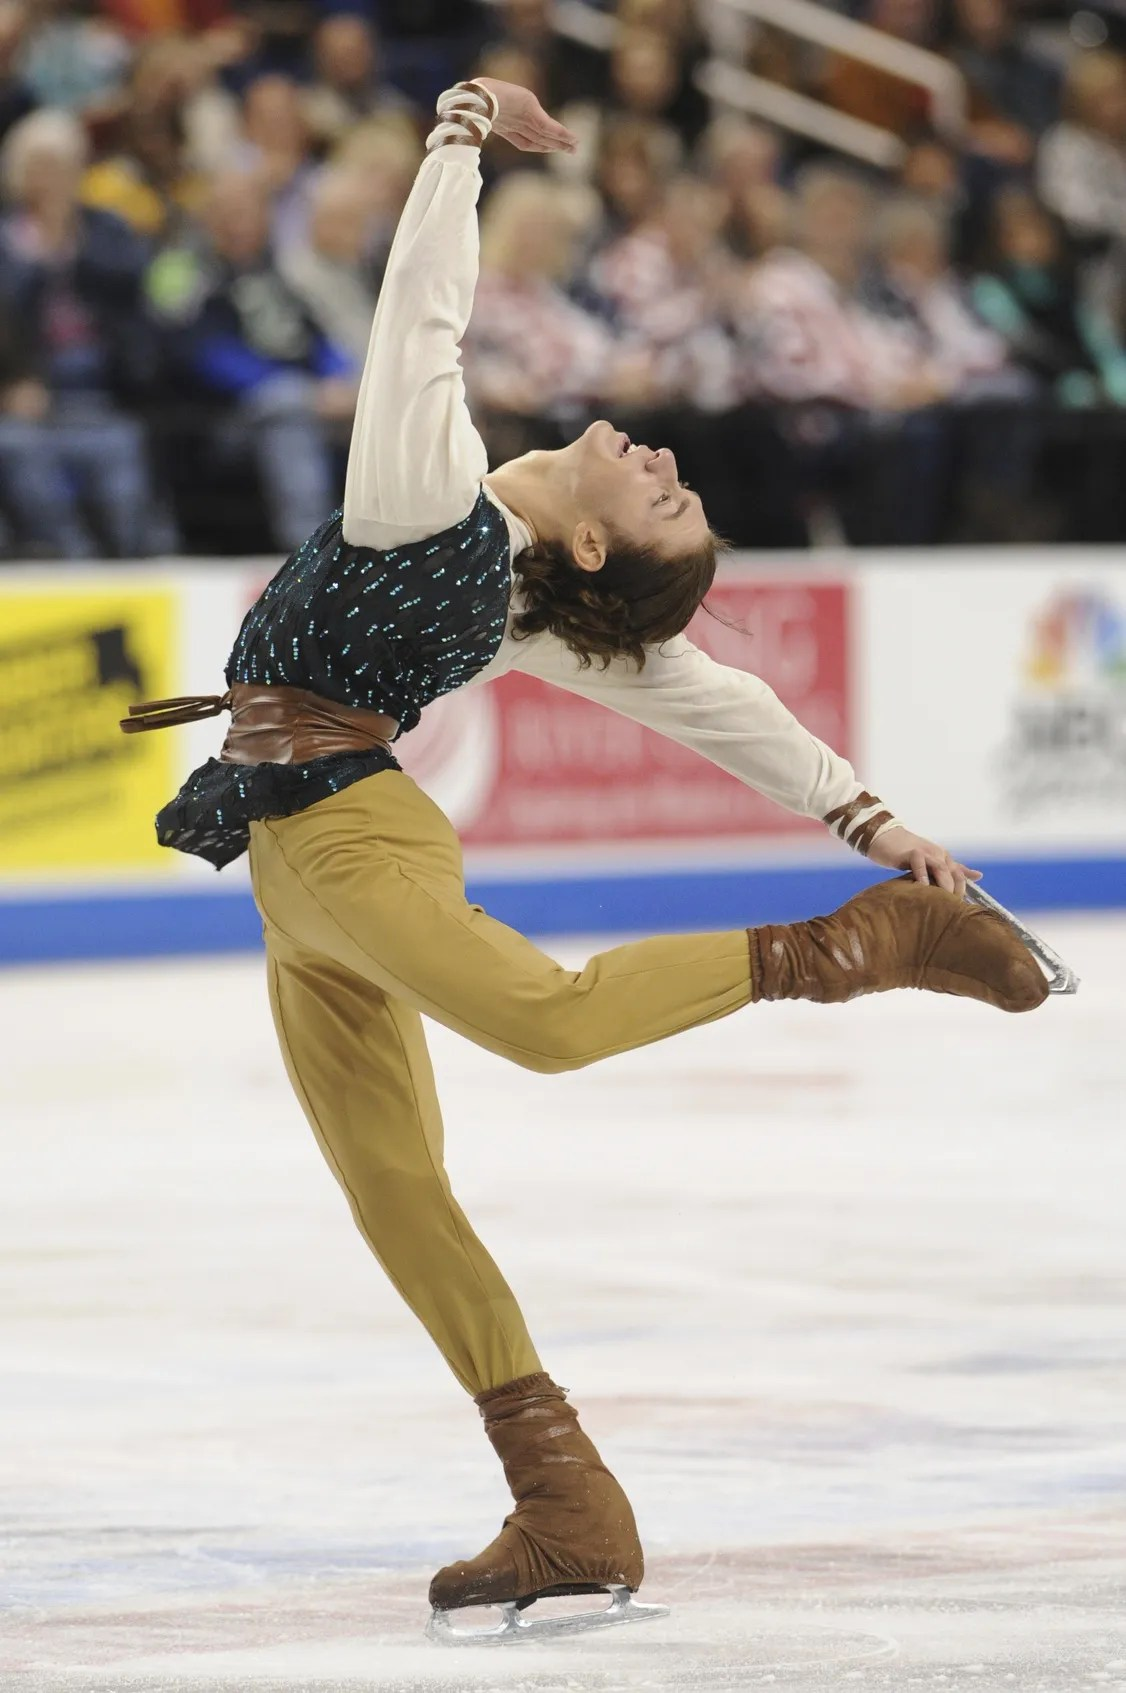 Jason Brown Wins First US Title, Holding Off Adam Rippon - jason rippon